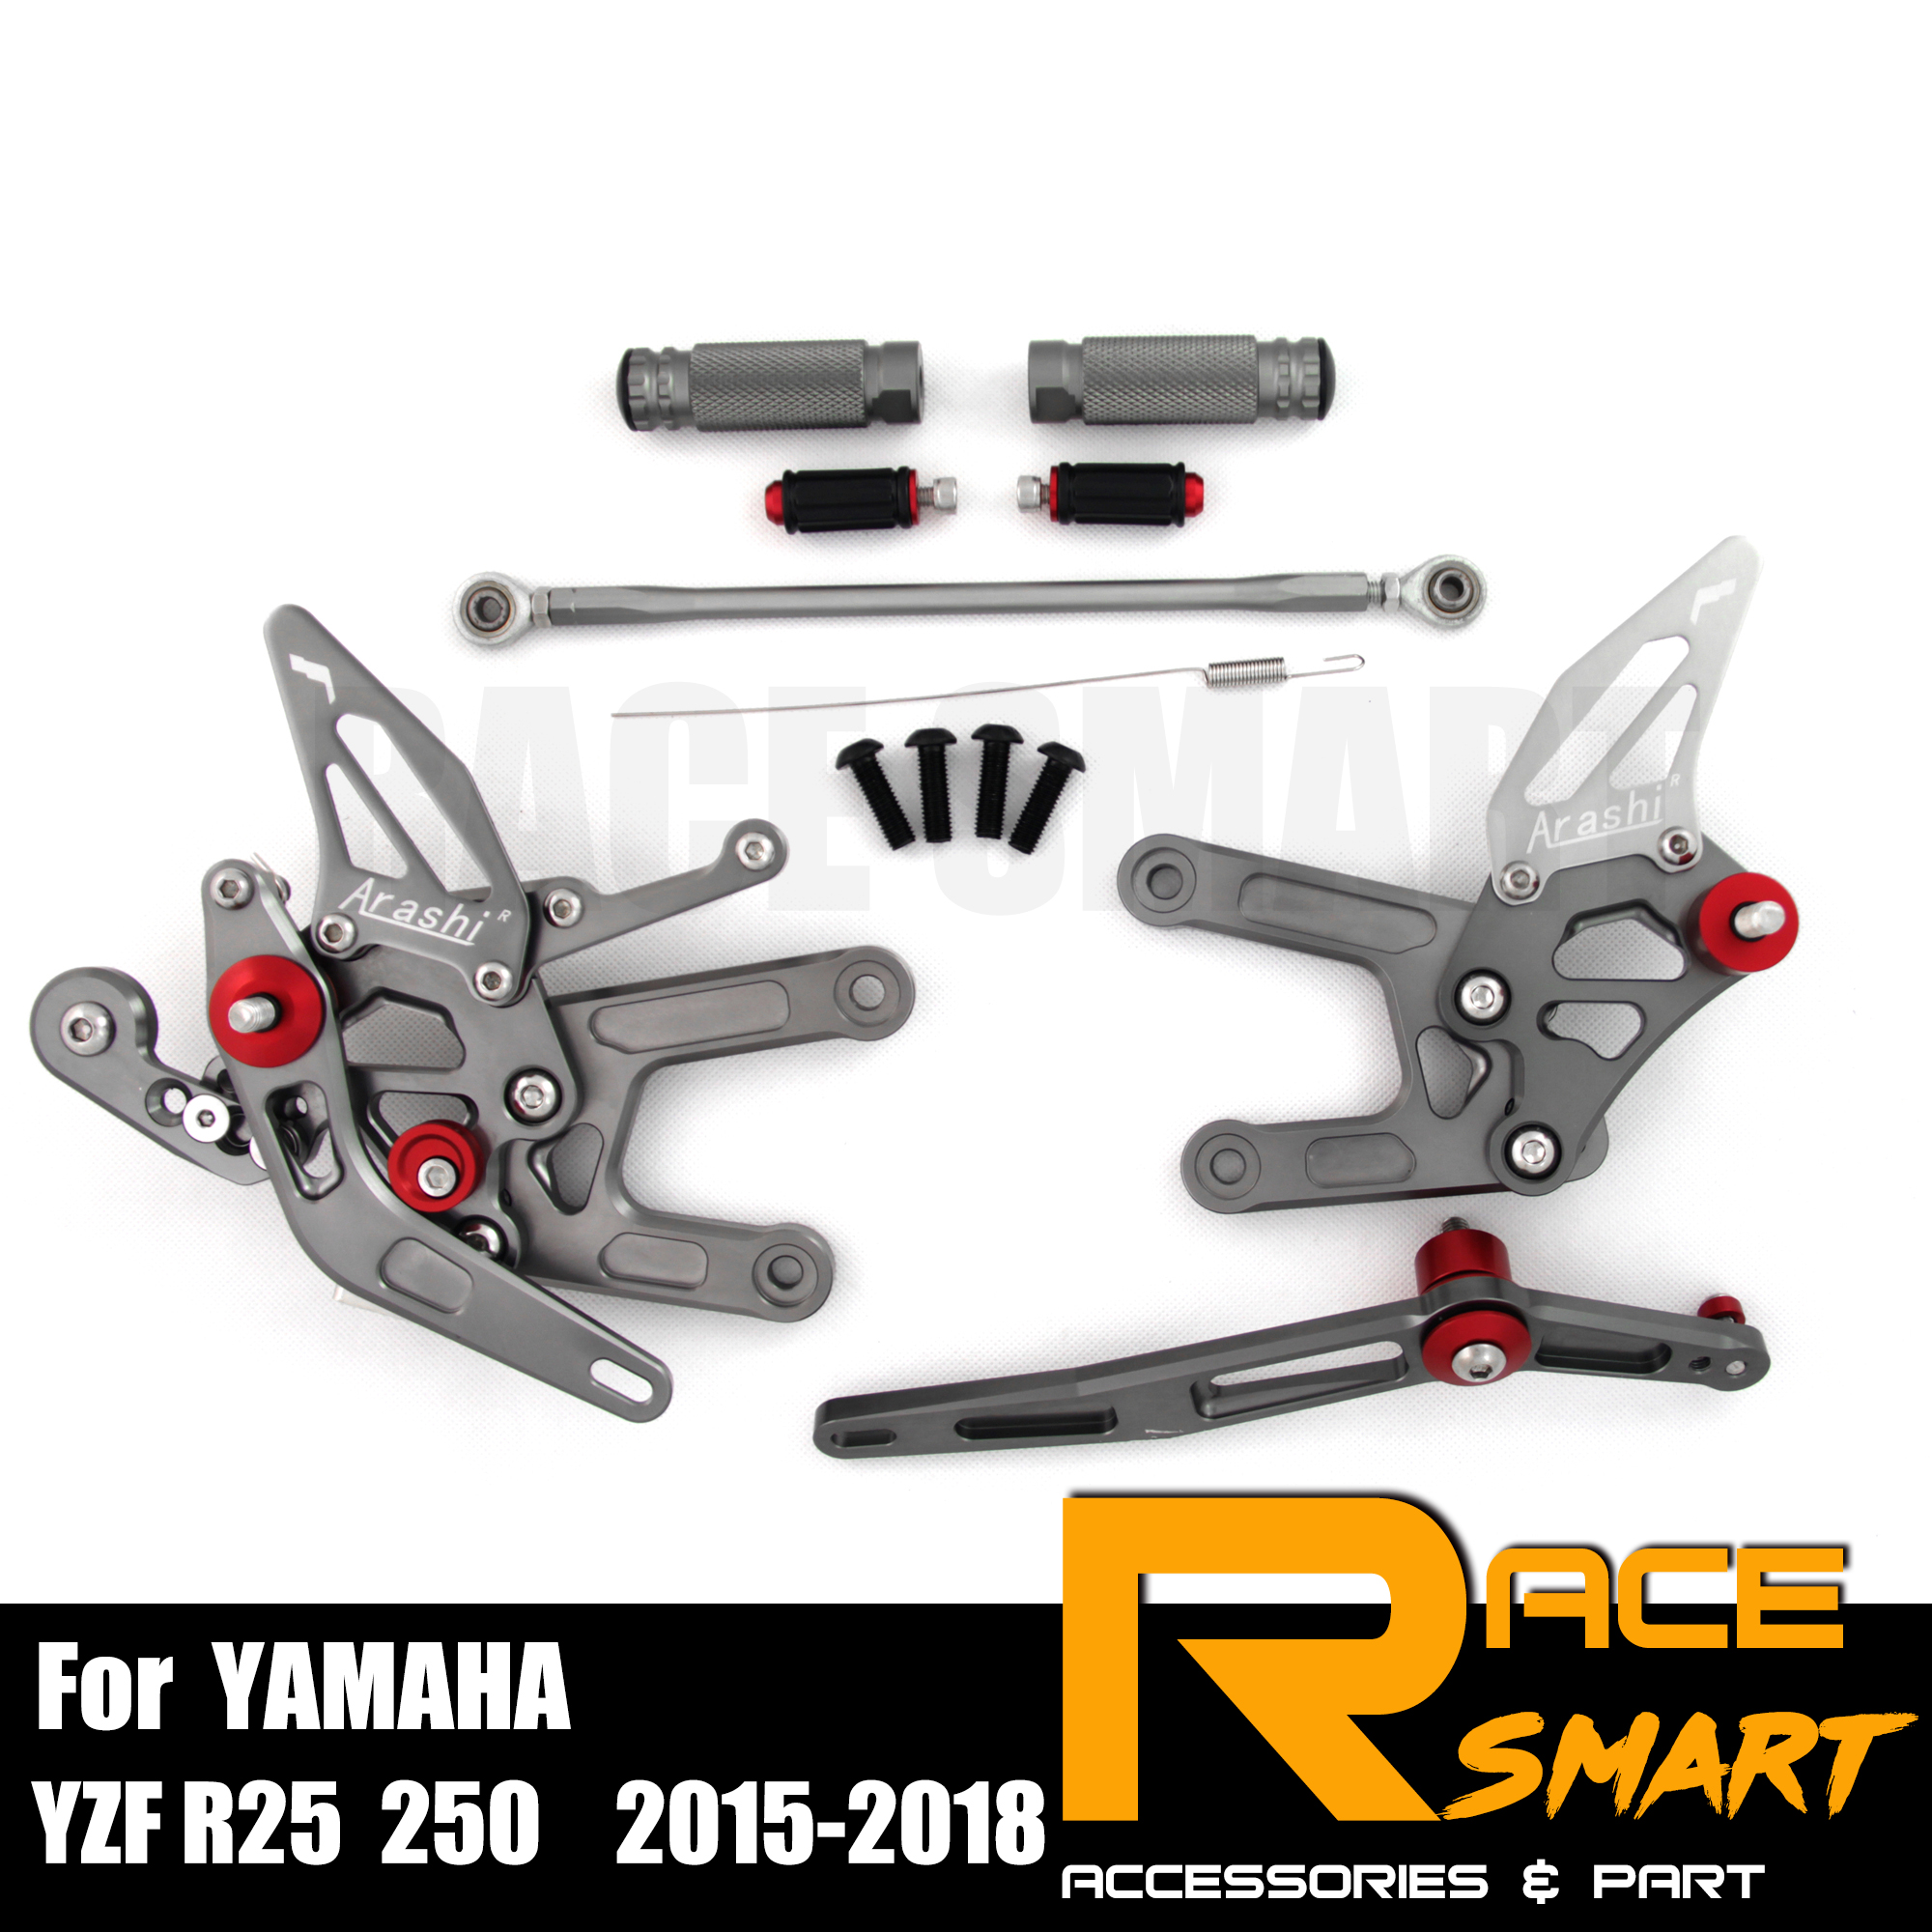 For YAMAHA YZF R25 2015 - 2018 250CC CNC Adjustable Rearset Footpegs Footrest Foot Rest Pegs Pedal Motorcycle Accessories 2016